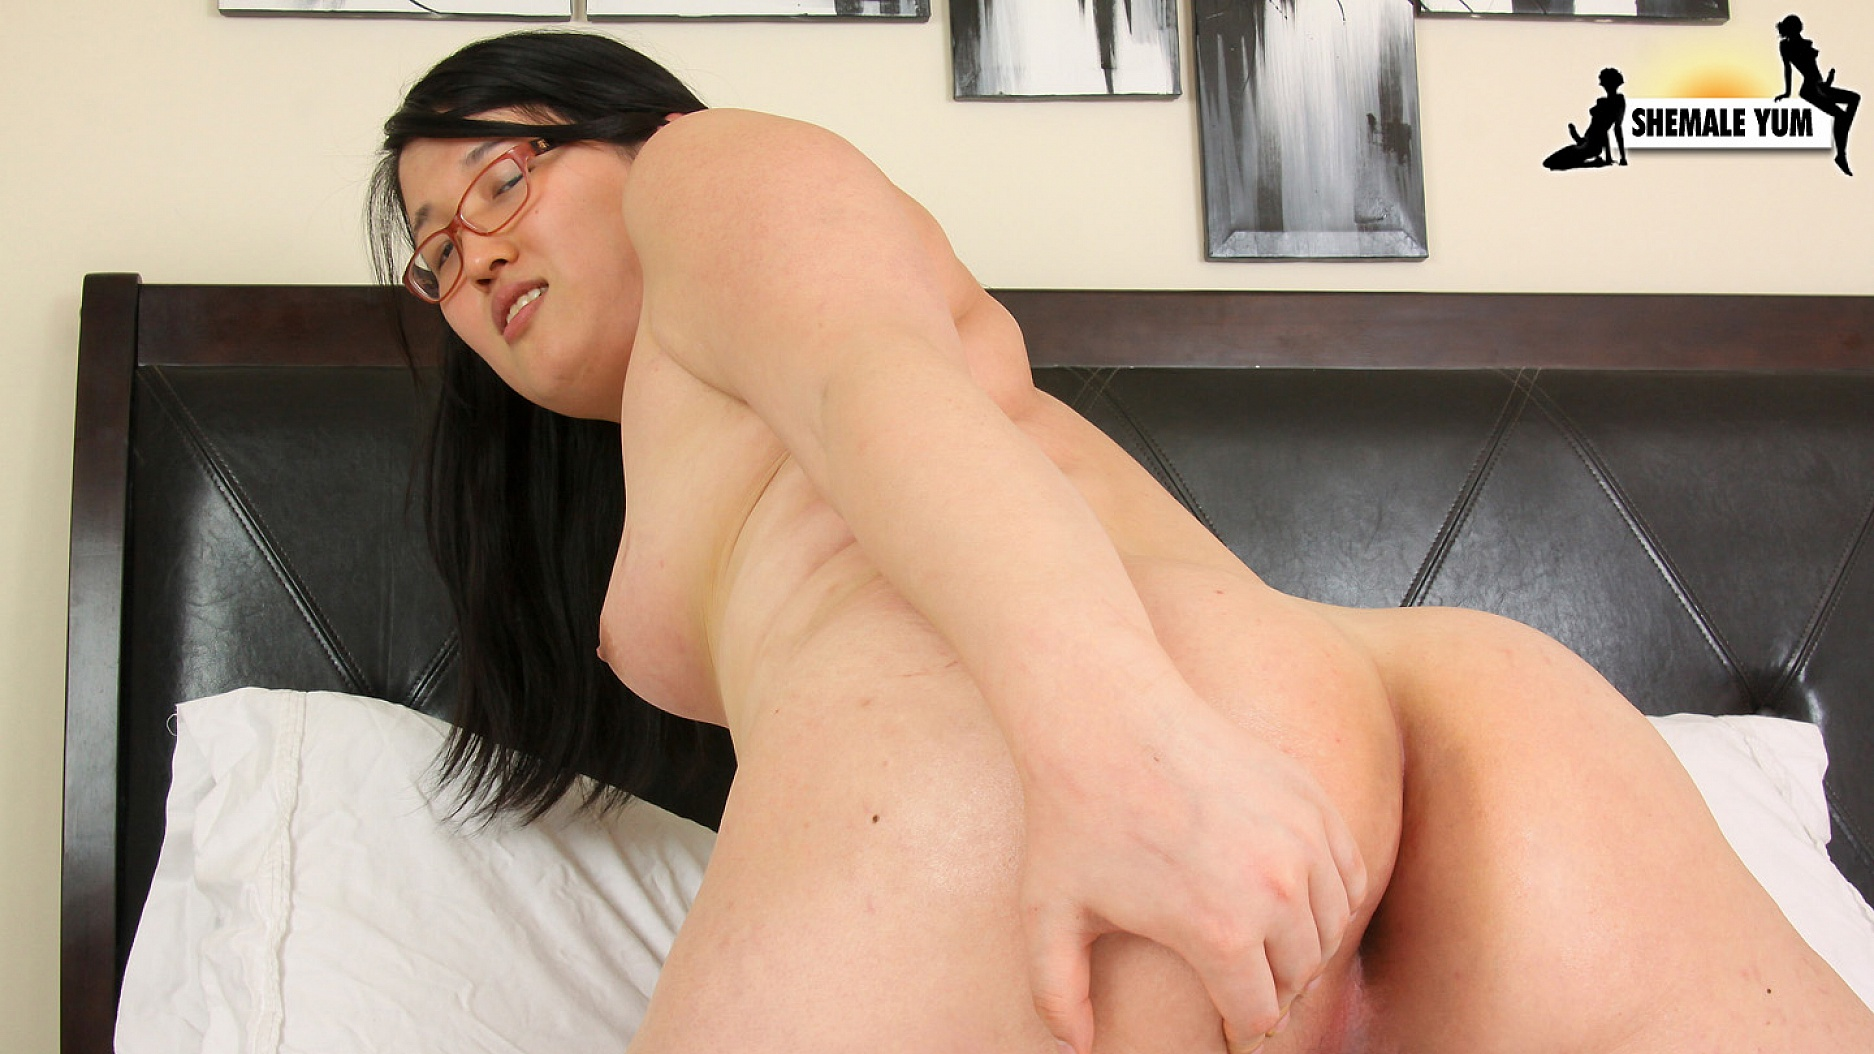 Tempting tranny showing ass and jerking 2